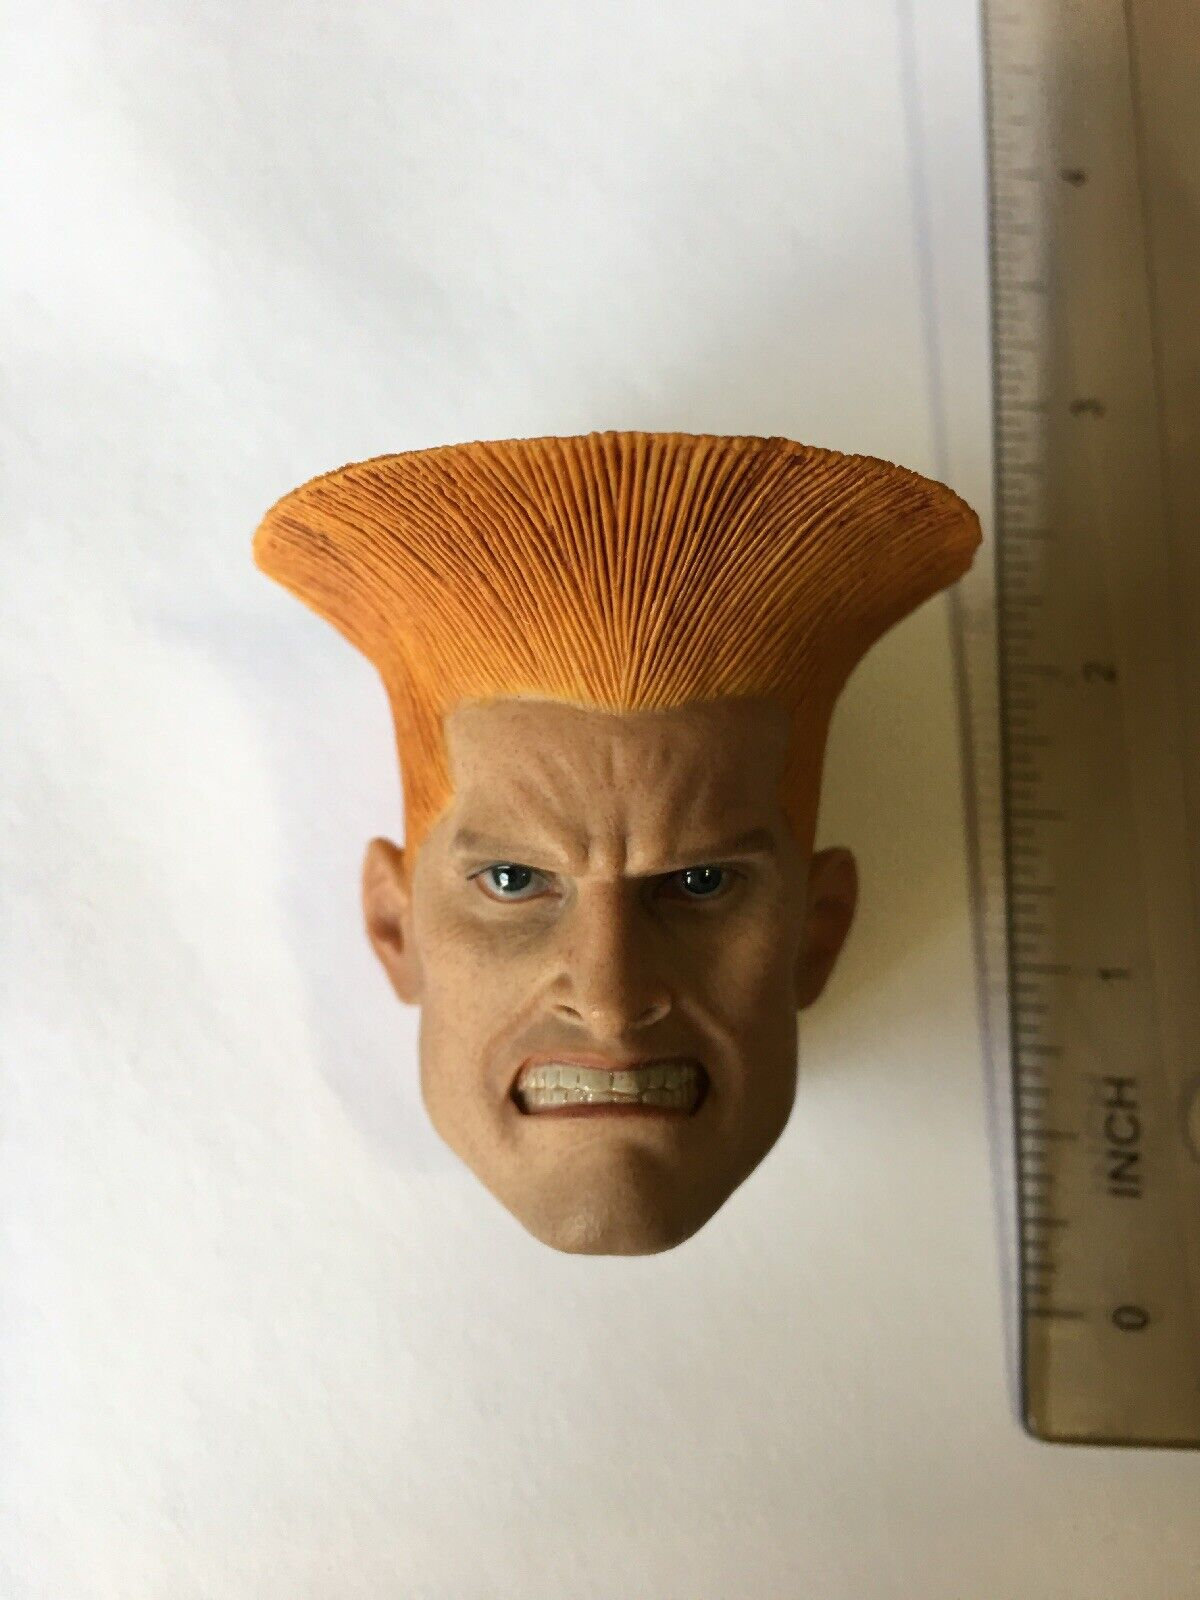 1 6 Scale ACPlay ATX044 STREET FIGHTER GUILE HEAD SCULPT Angry Face